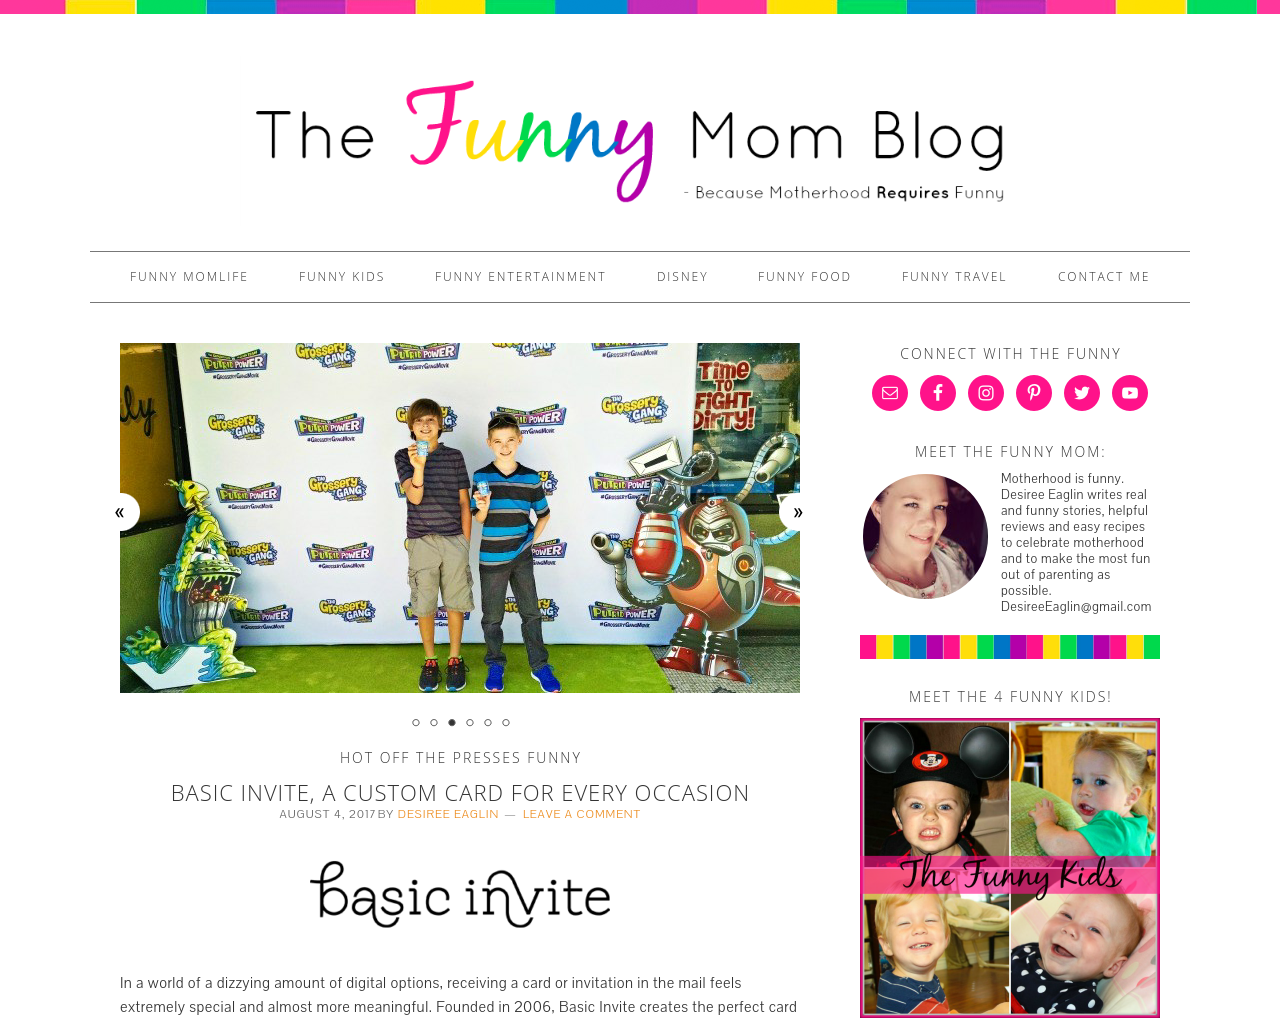 The-Funny-Mom-Blog-Advertising-Reviews-Pricing